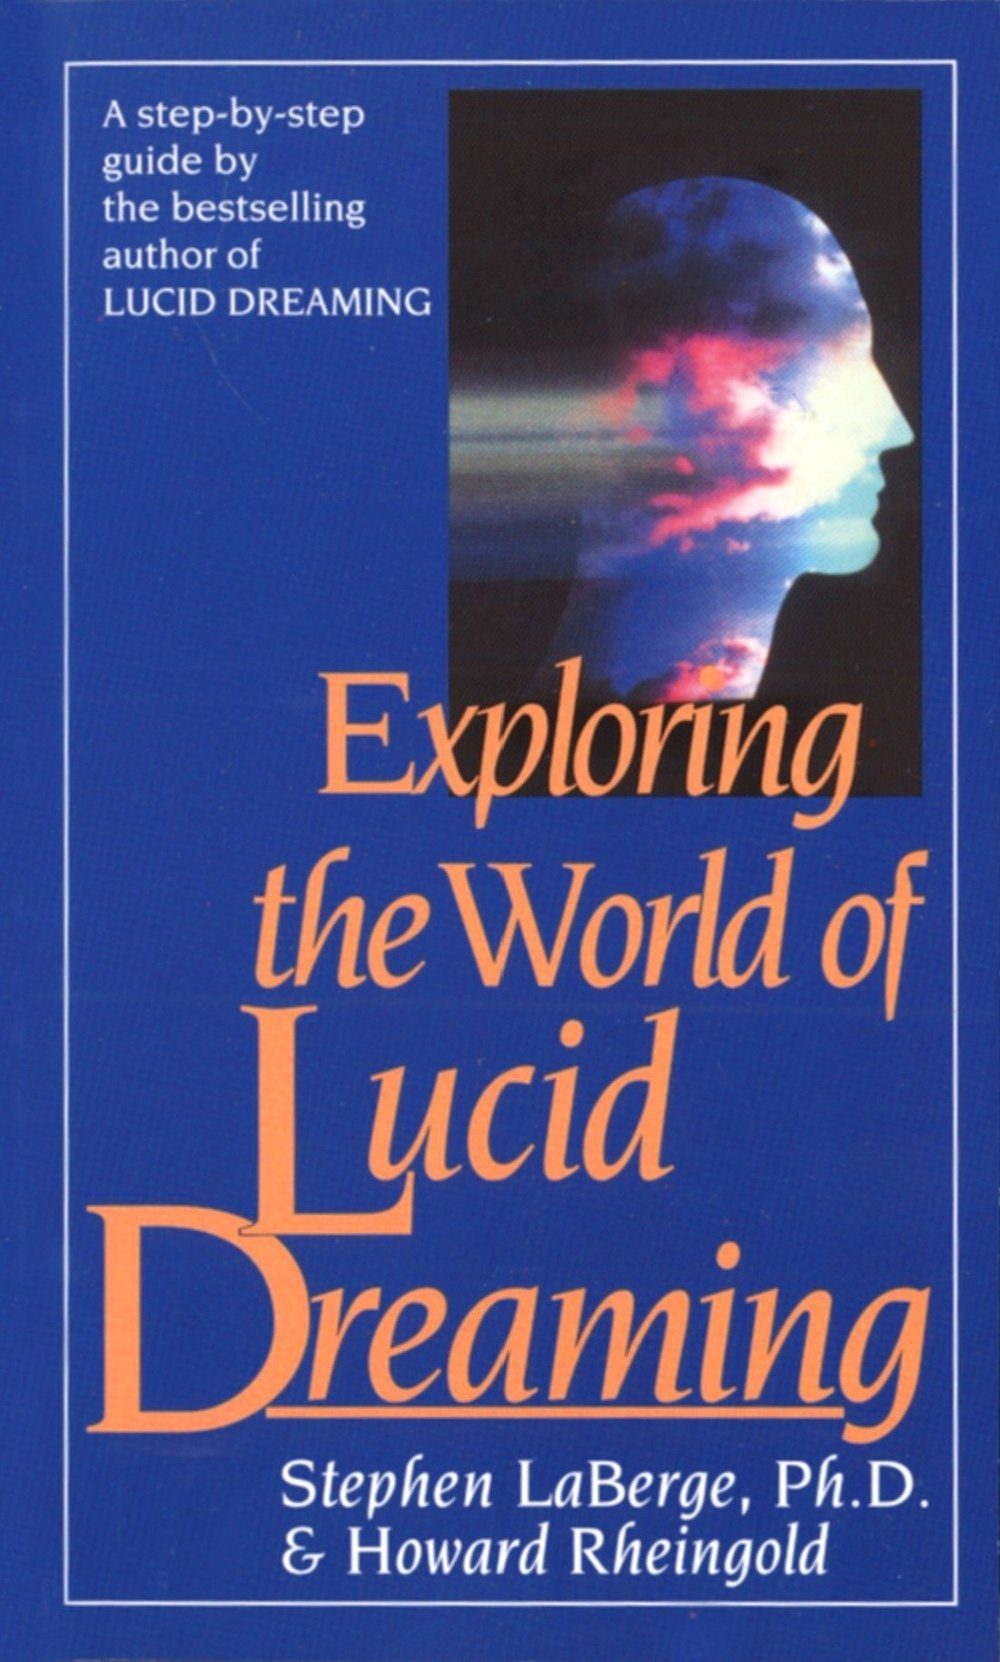 Awaken in your dreams - A lucid dream is a dream during which the dreamer is aware that they are dreaming. During a lucid dream, the dreamer may gain some amount of control over the dream characters, narrative, and environment; however, this is not actually necessary for a dream to be described as lucid